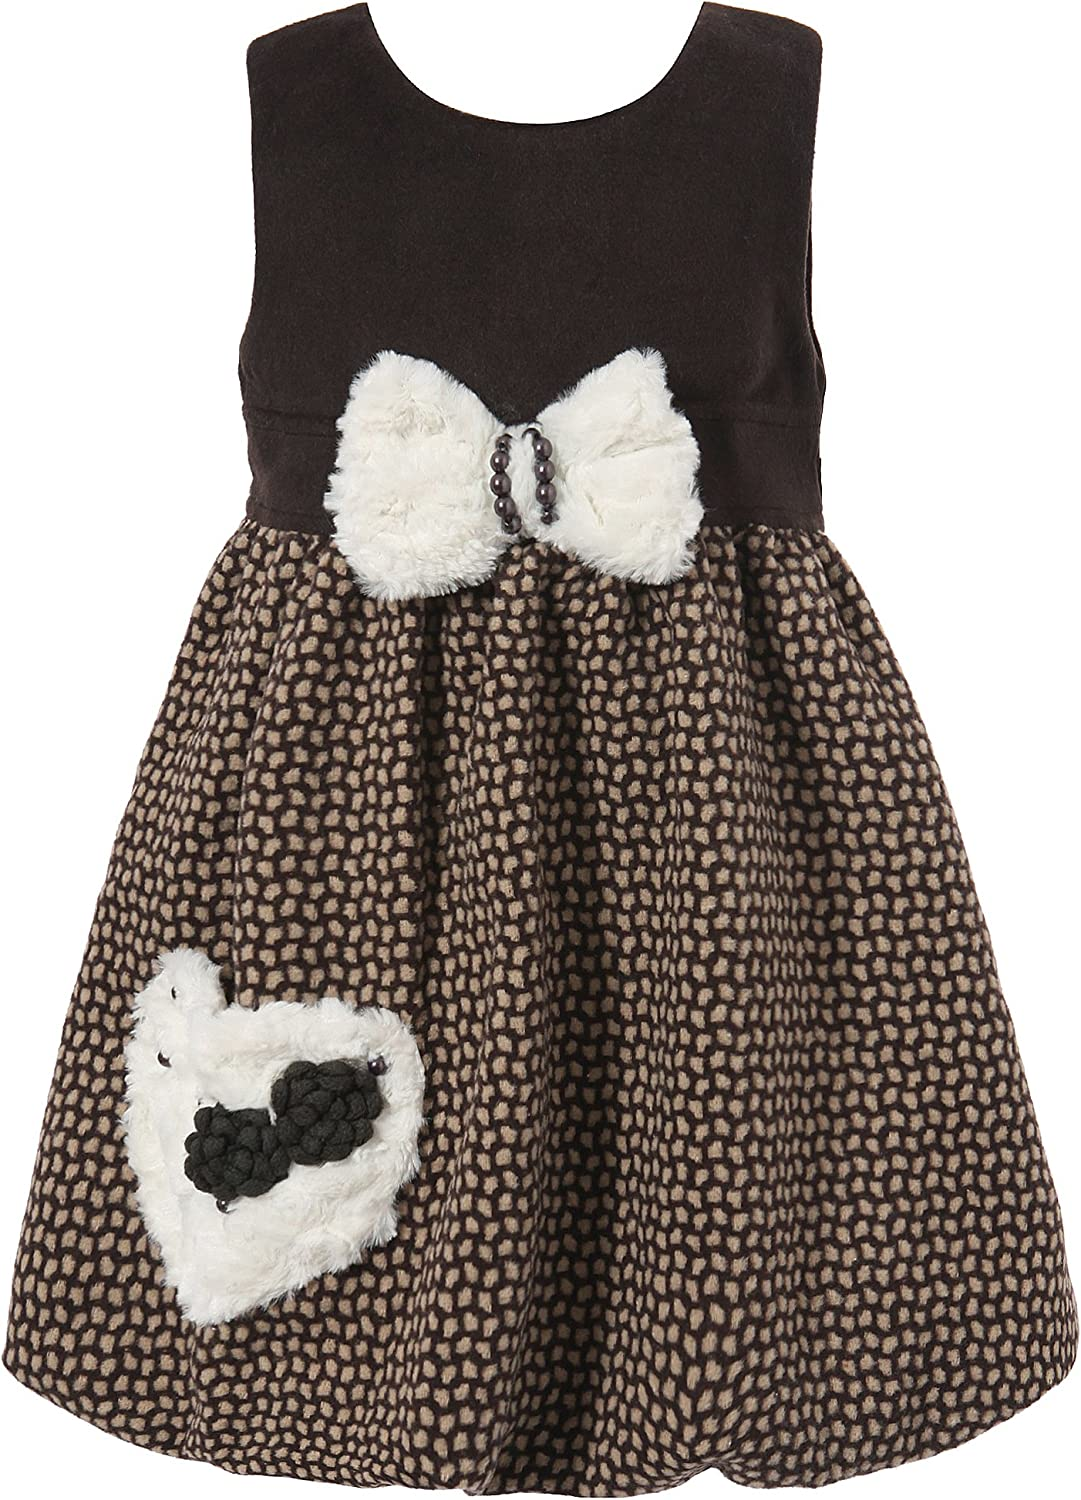 Richie House Big Girls' Fahion Dress for All Occasions RH1480